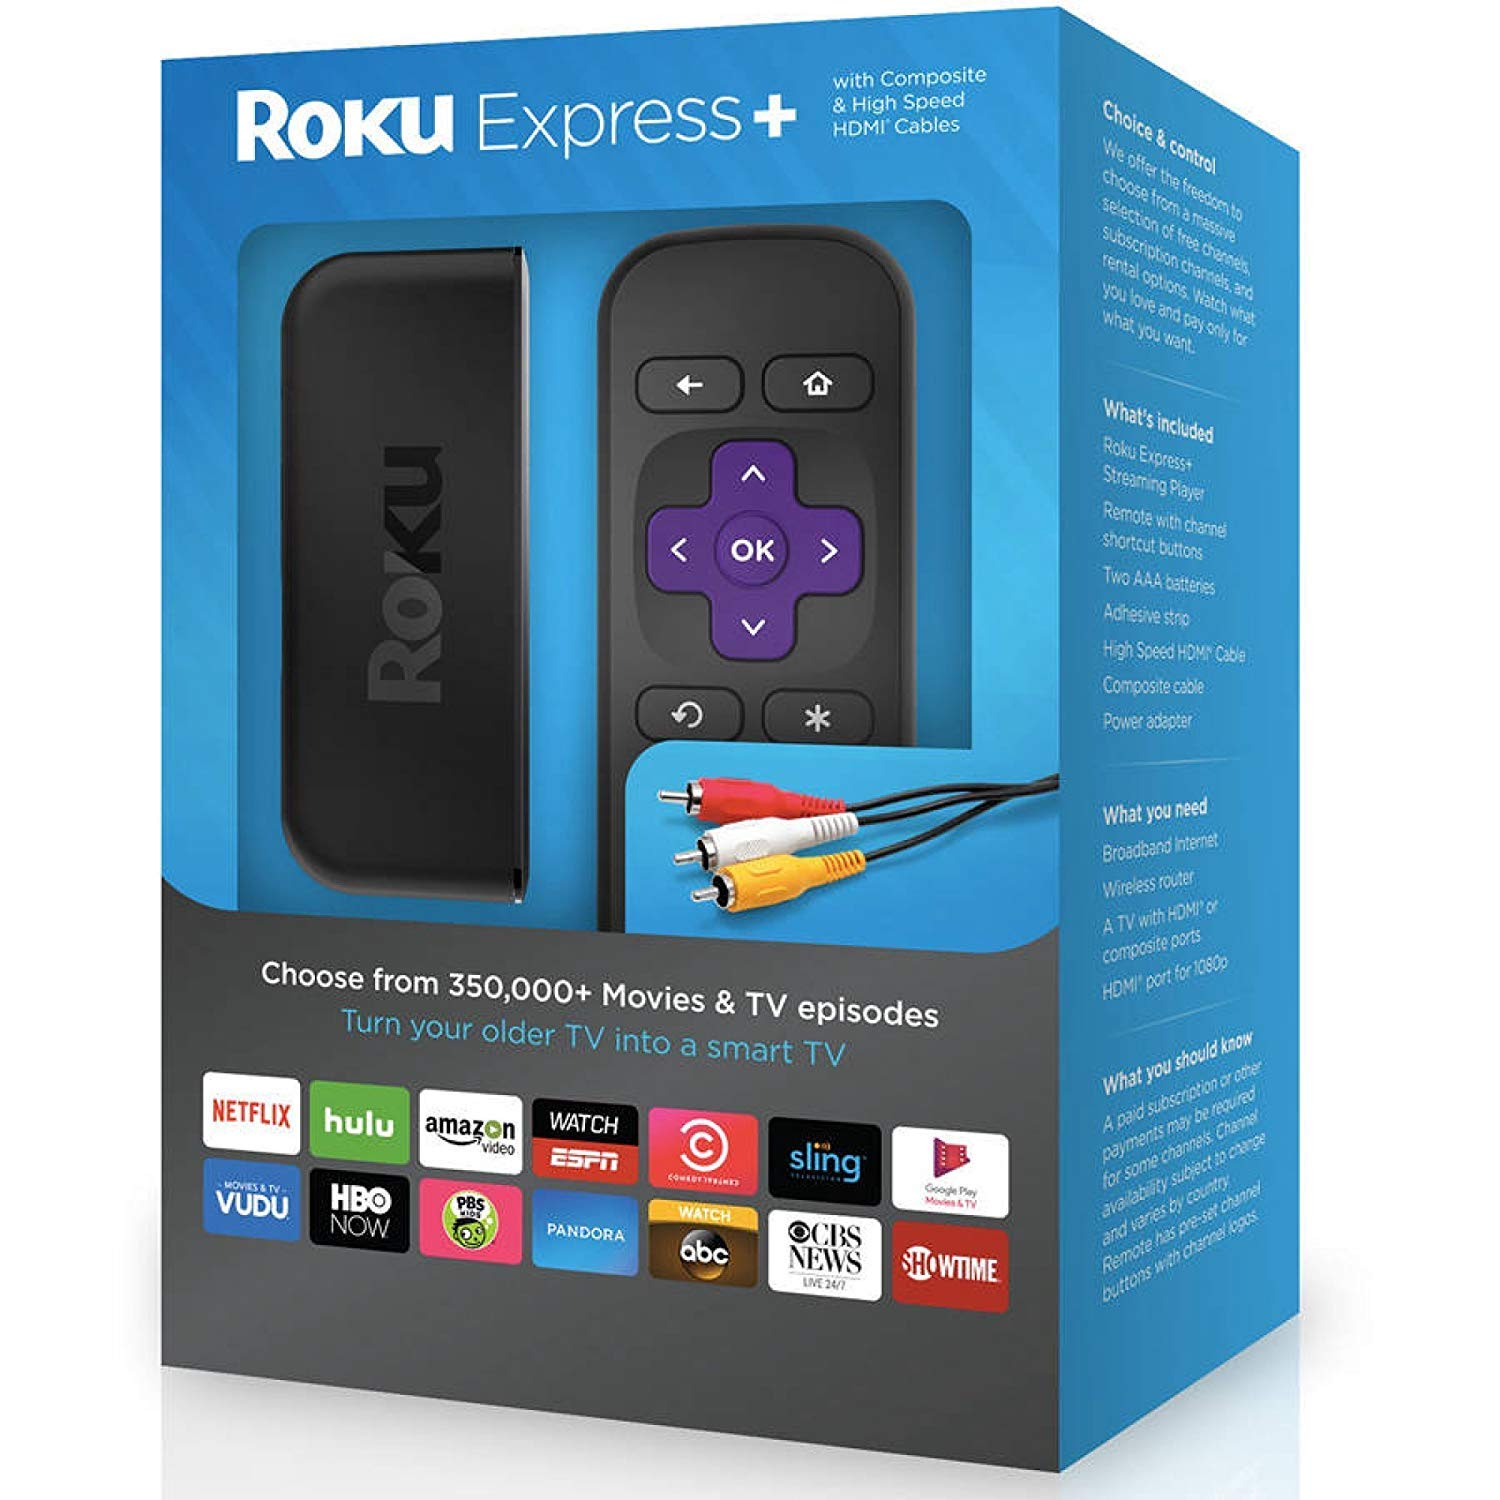 Roku Express+ US version – Not intended for use in Canada